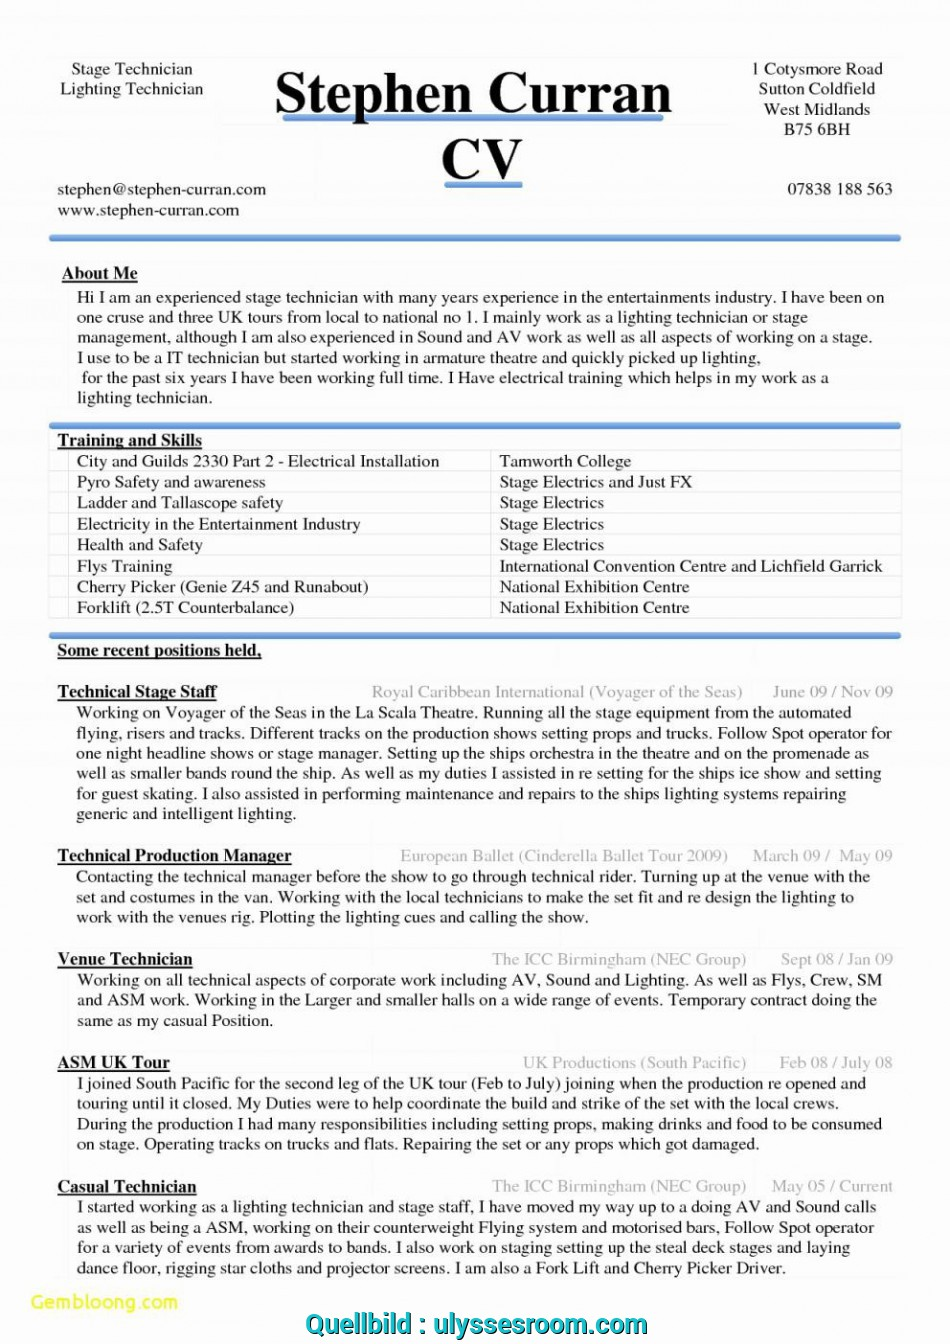 Positiv 007 Download Resume Template Word Lebenslauf Vorlage